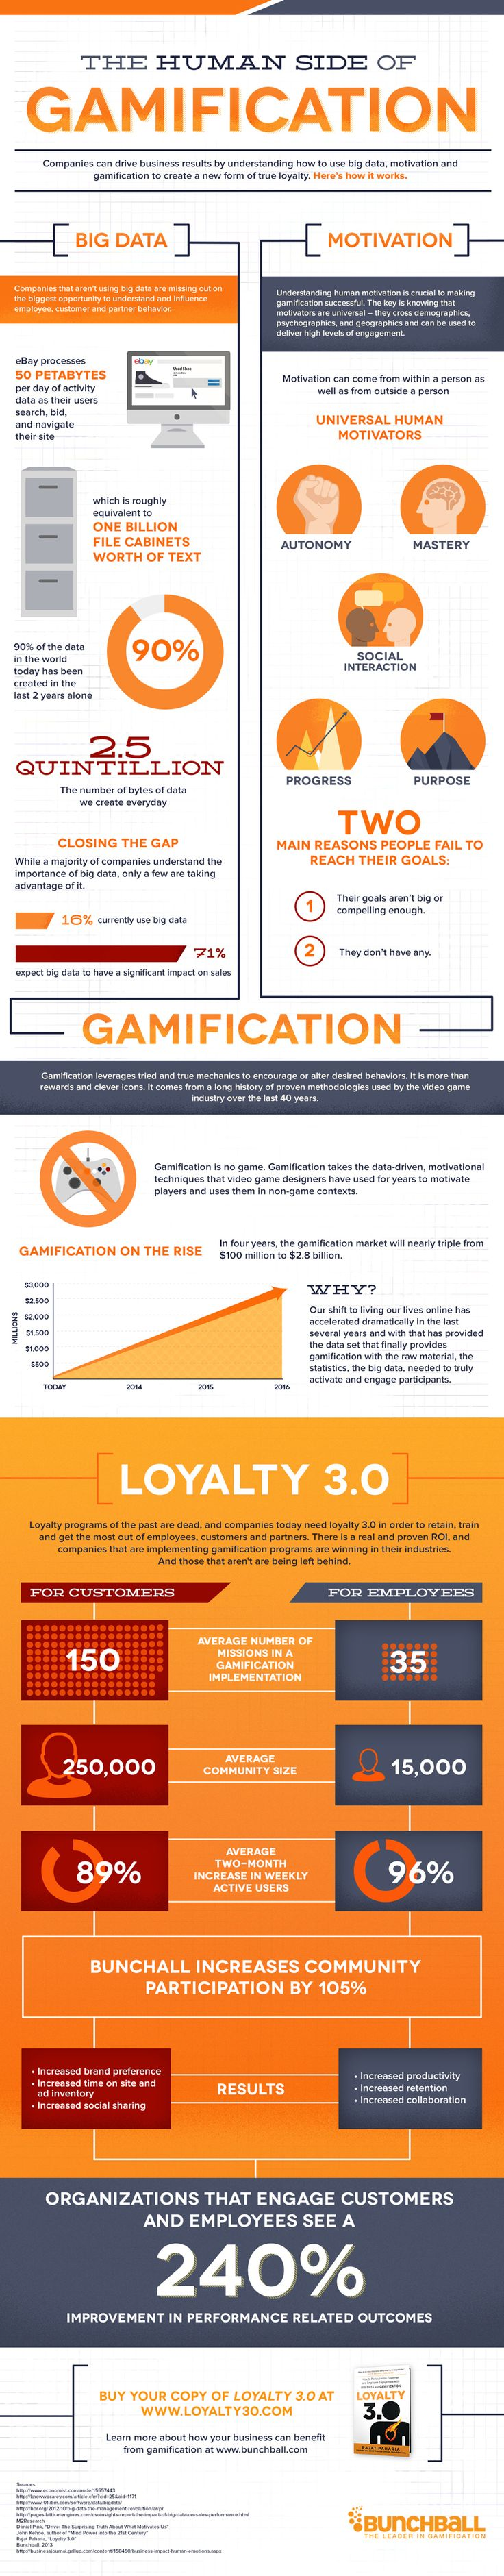 How gamification can pimp your corporate sales training - The Human Side Of Gamification